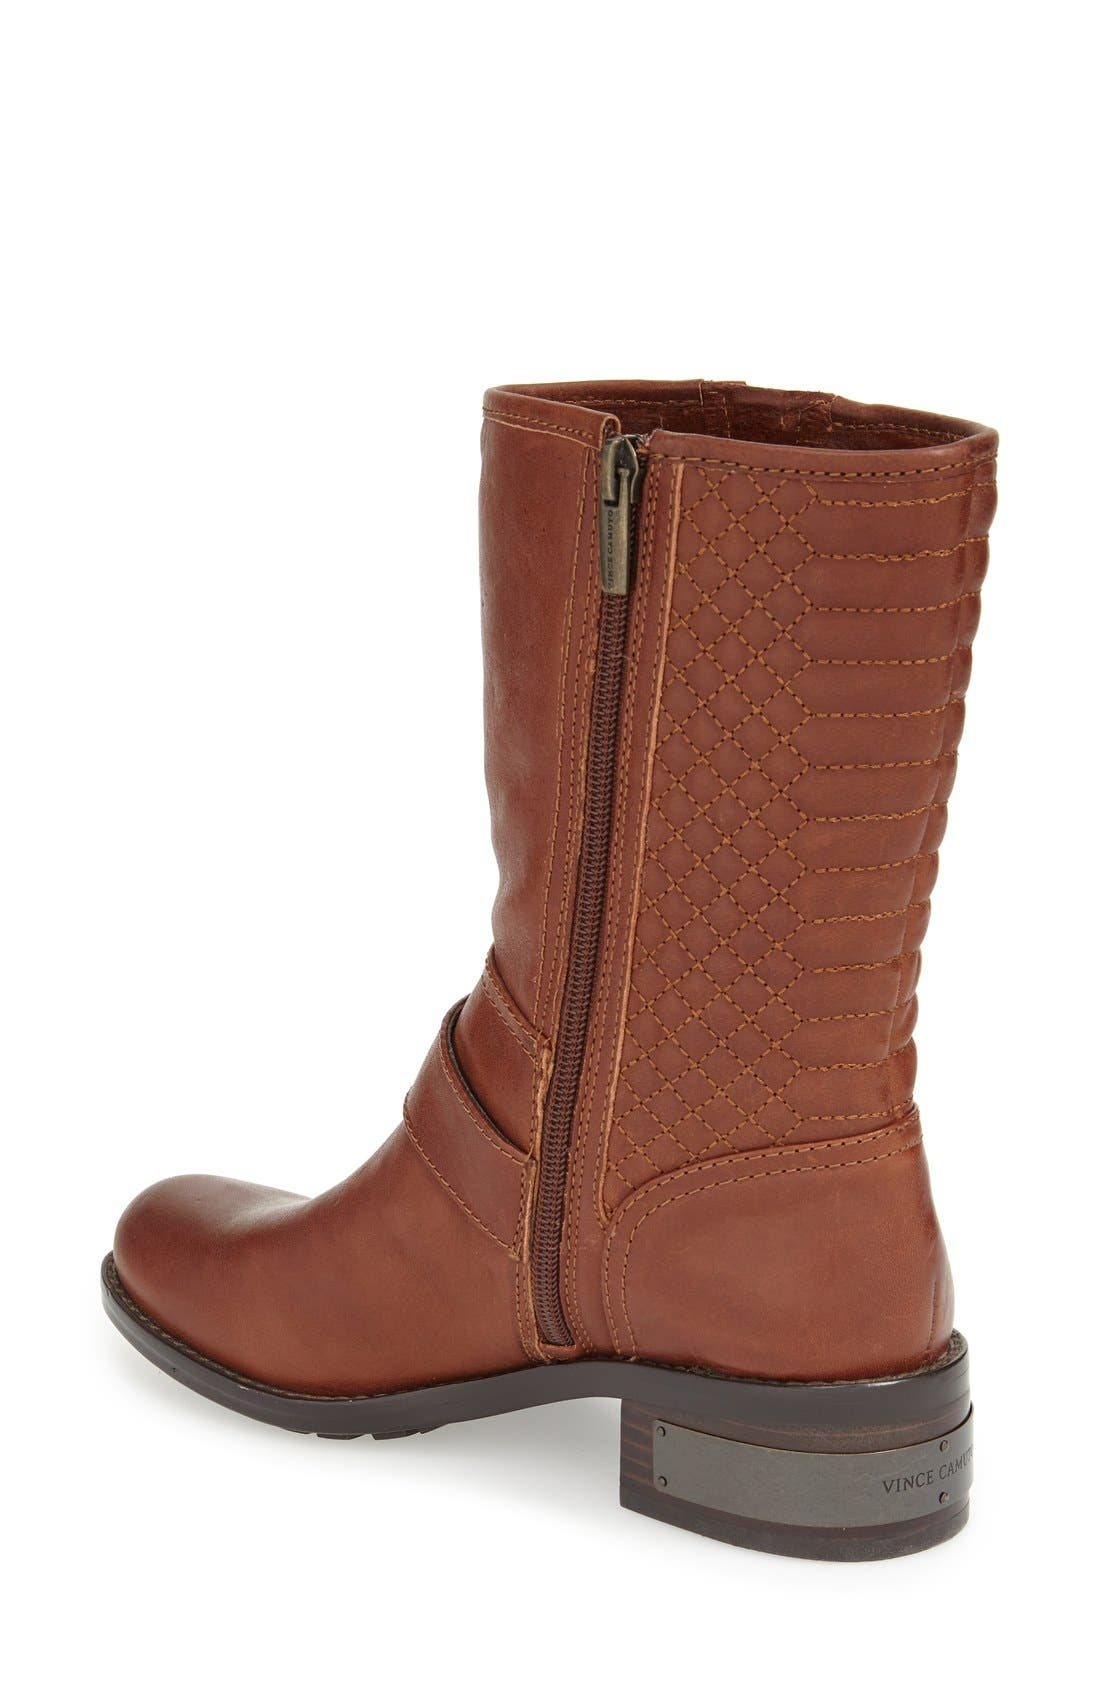 Alternate Image 2  - Vince Camuto 'Whynn' Moto Boot (Women)